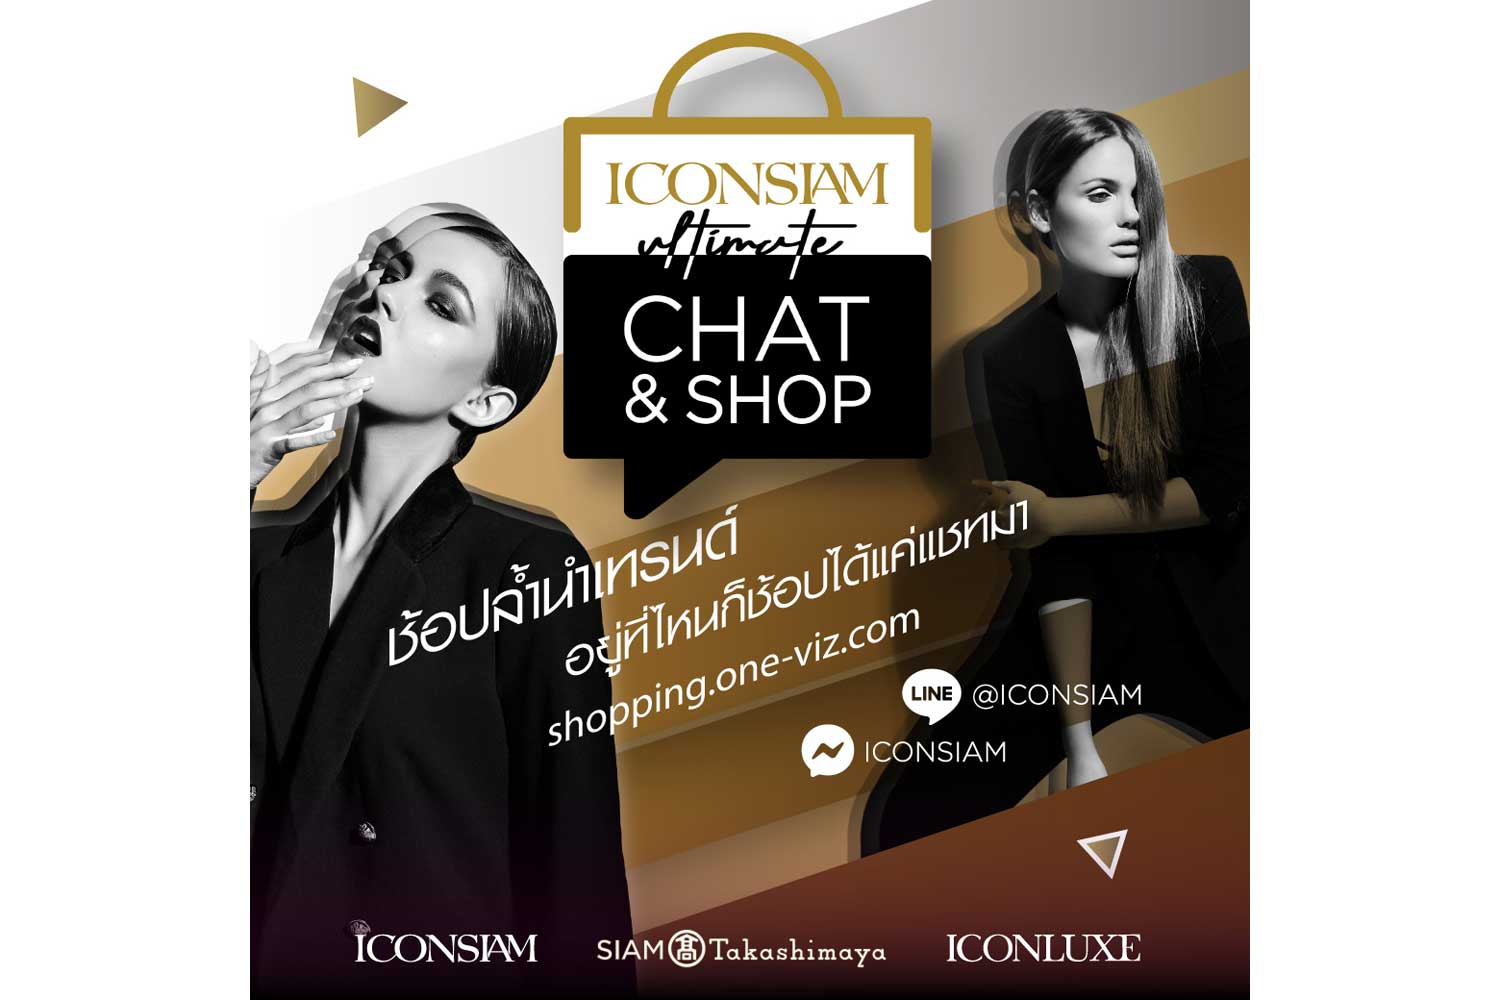 ICONSIAM indulges shoppers with on-trend new-normal shopping experiences